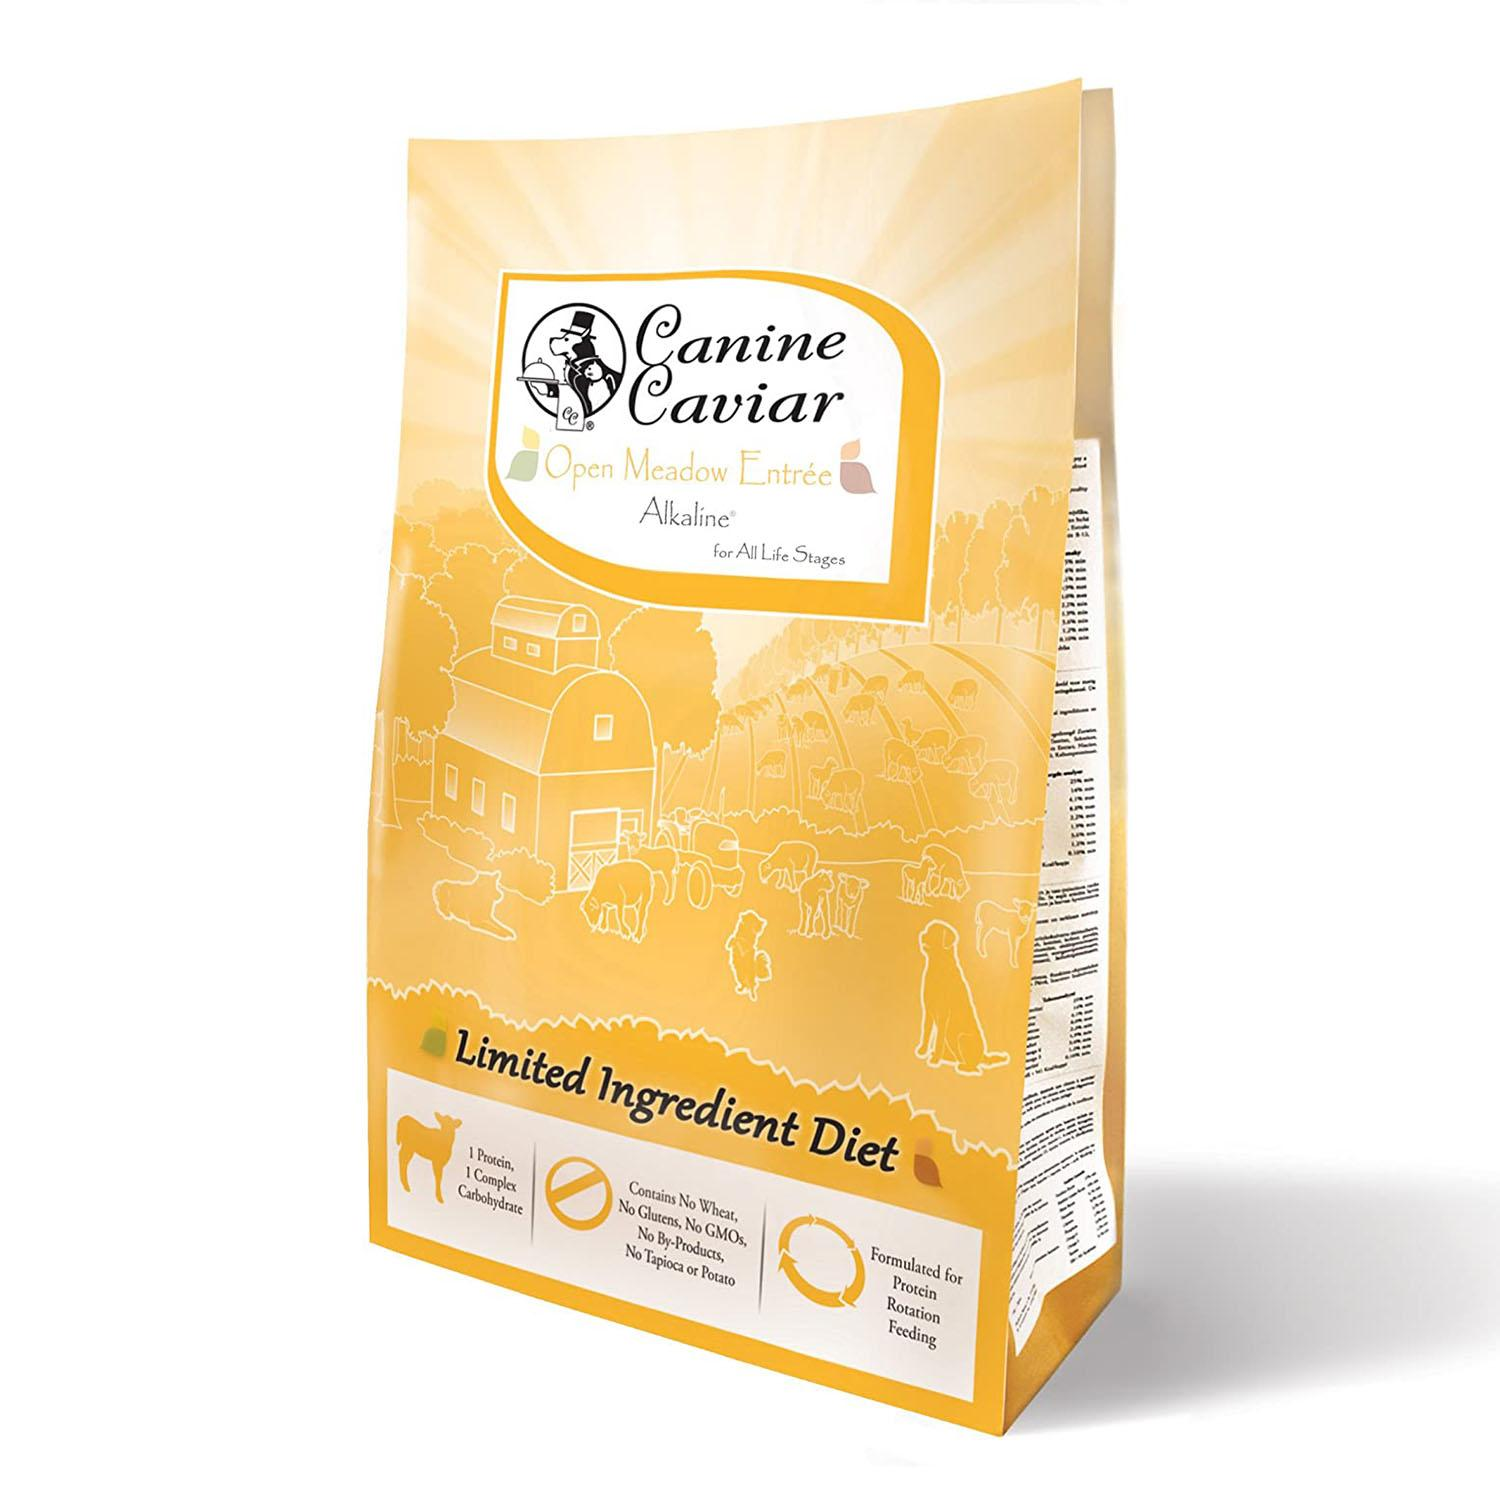 Canine Caviar Limited-Ingredient Alkaline Holistic Dry Dog Food - Open Meadow with Lamb & Pearl Millet